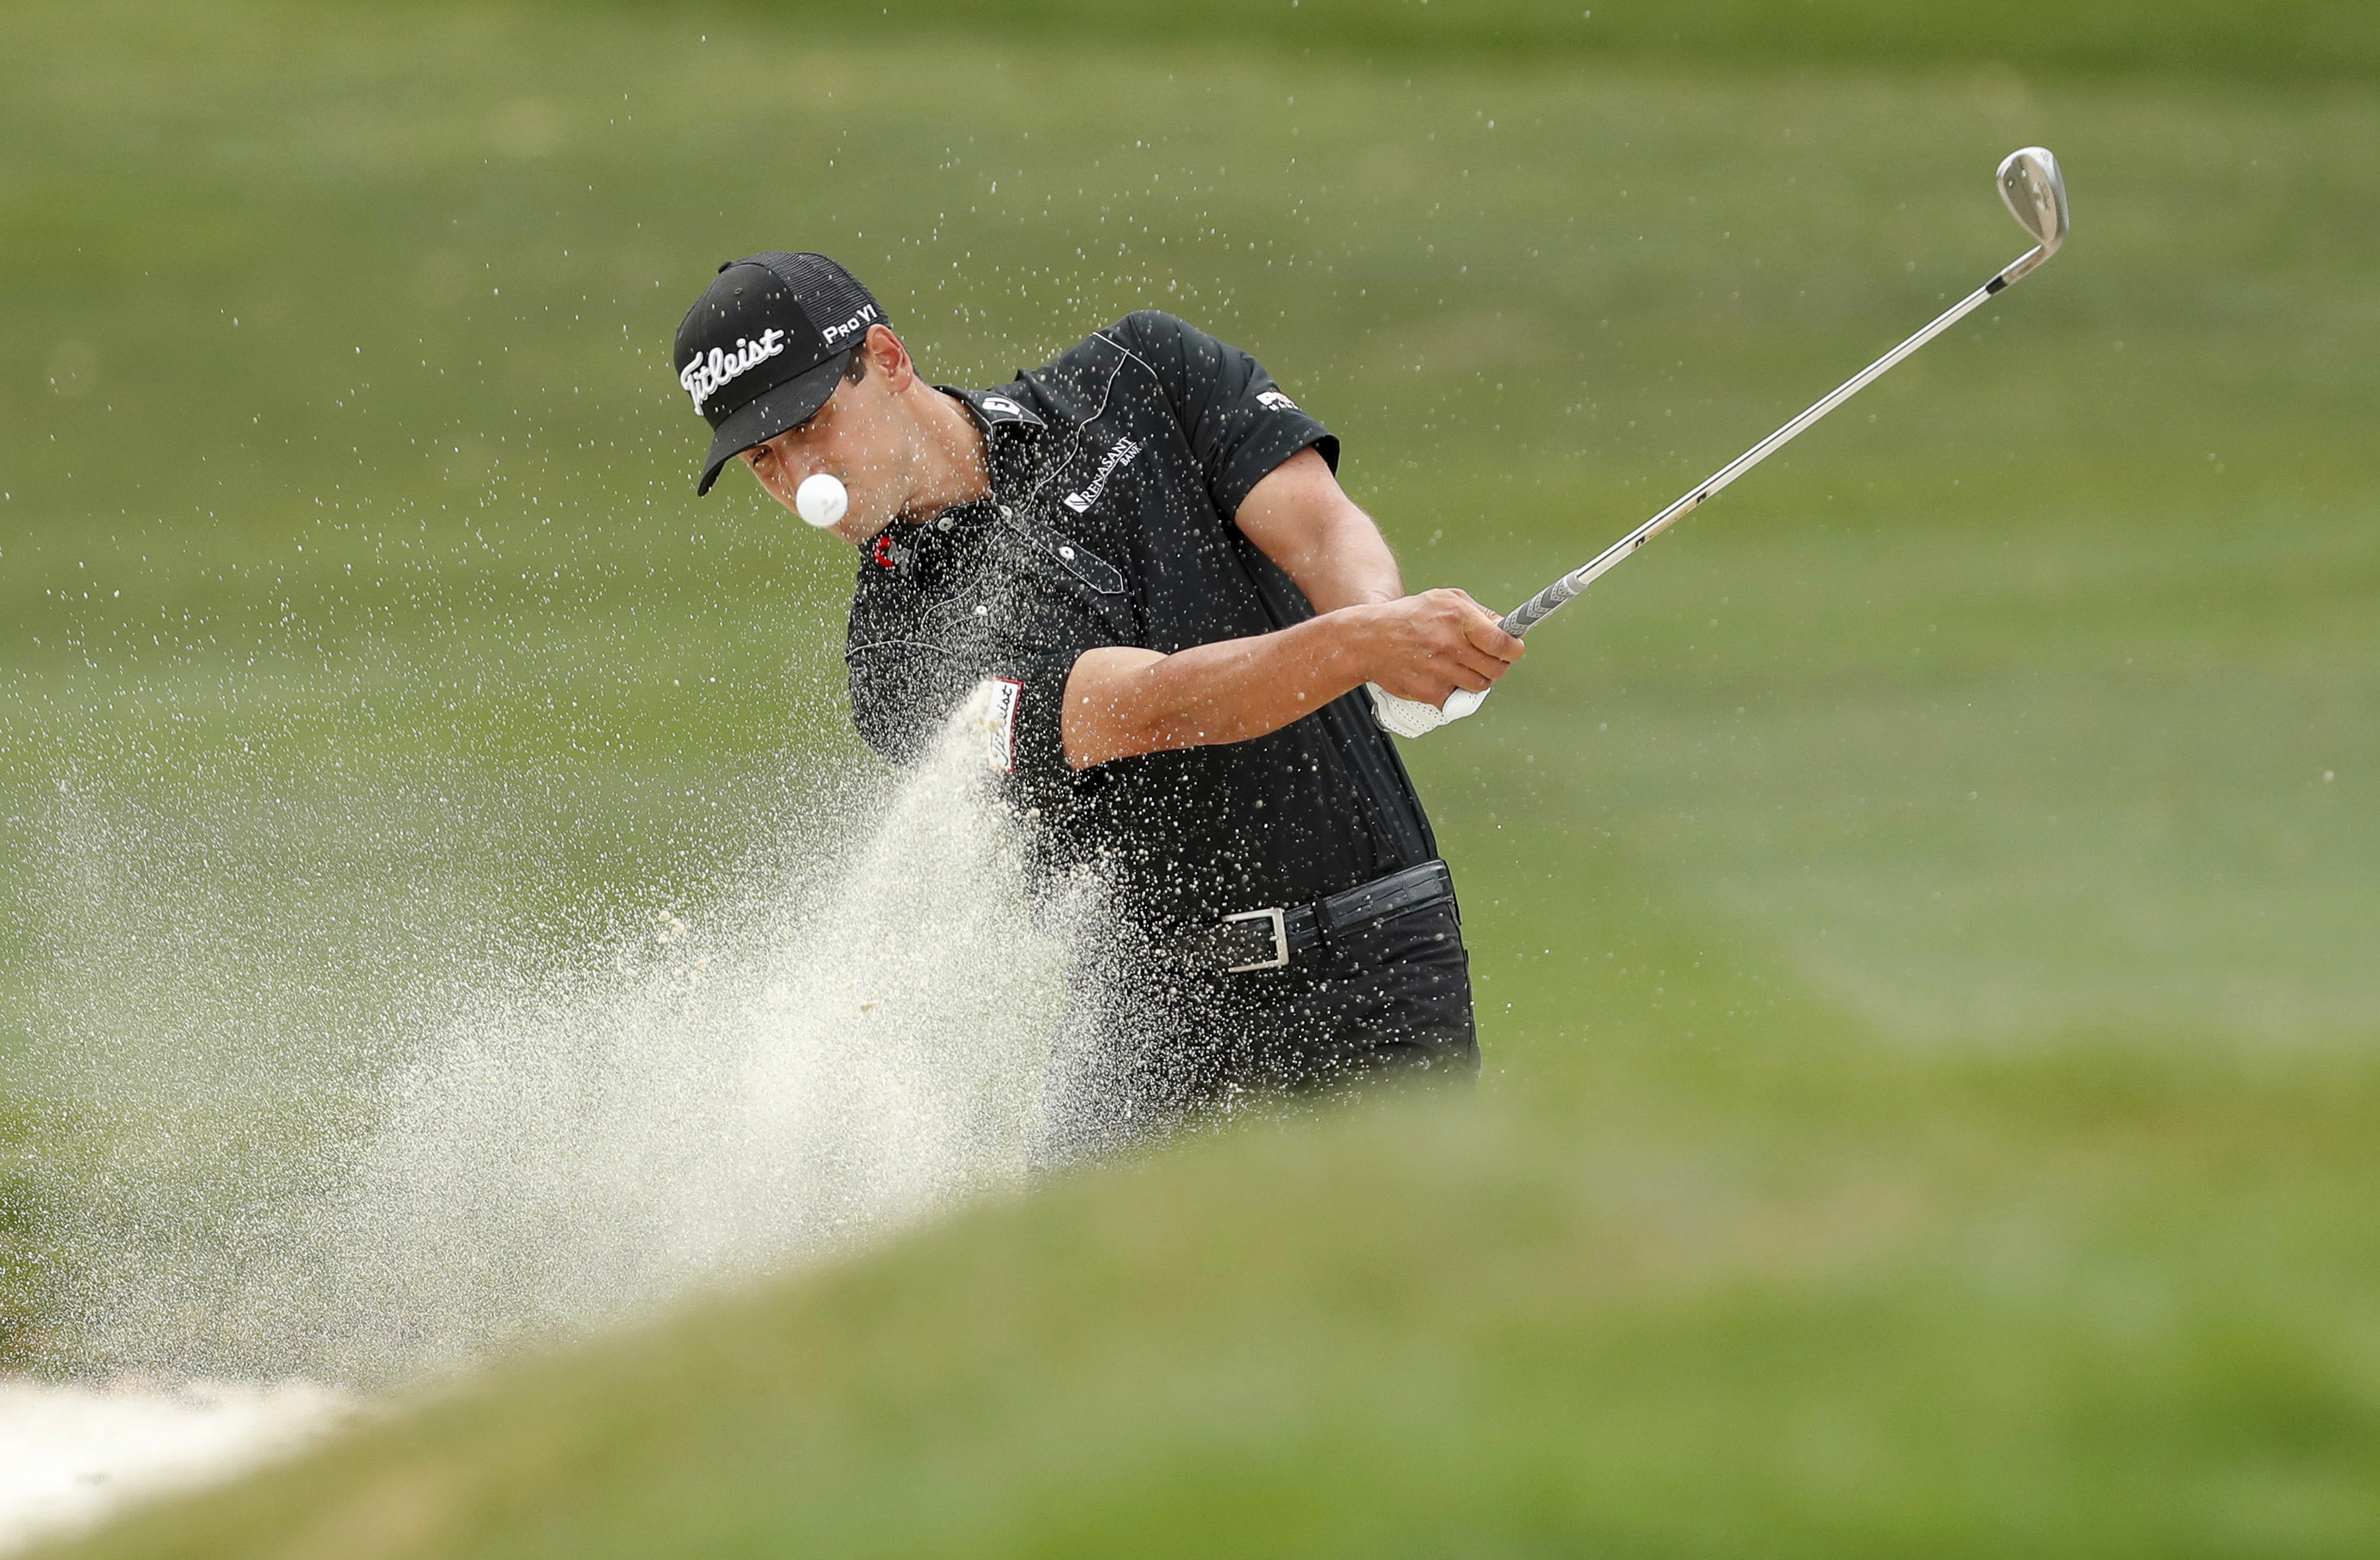 Dominic Bozzelli chips onto the first green during the final round of the Valspar Championship golf tournament Sunday, March 12, 2017, at Innisbrook in Palm Harbor, Fla. (AP Photo/Mike Carlson)